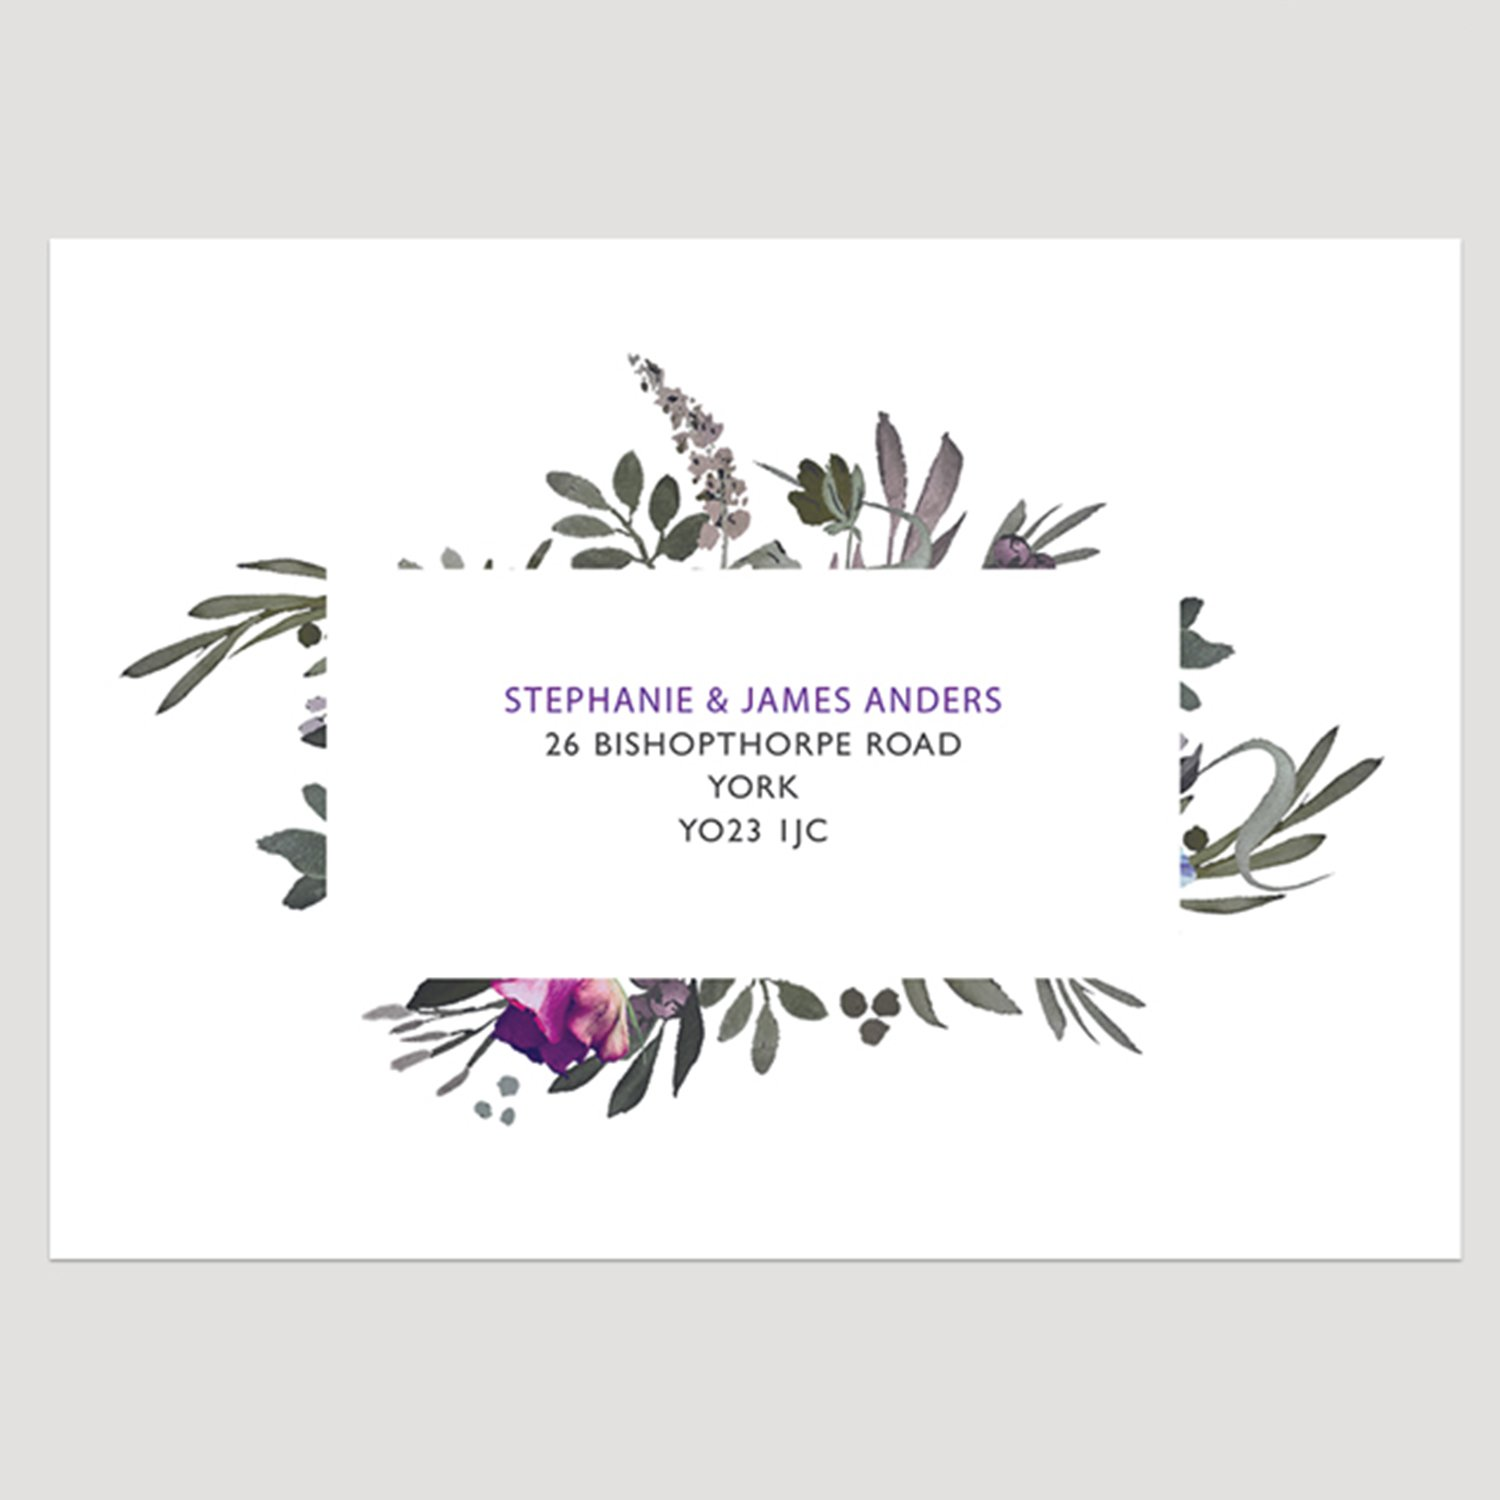 Muted Floral Printed Invitation Envelope, Guest Addressed Printed Envelopes, Floral Wedding Invitation, Summer Wedding Invitation, Autumn Wedding Invitation, Modern Wedding Invitation